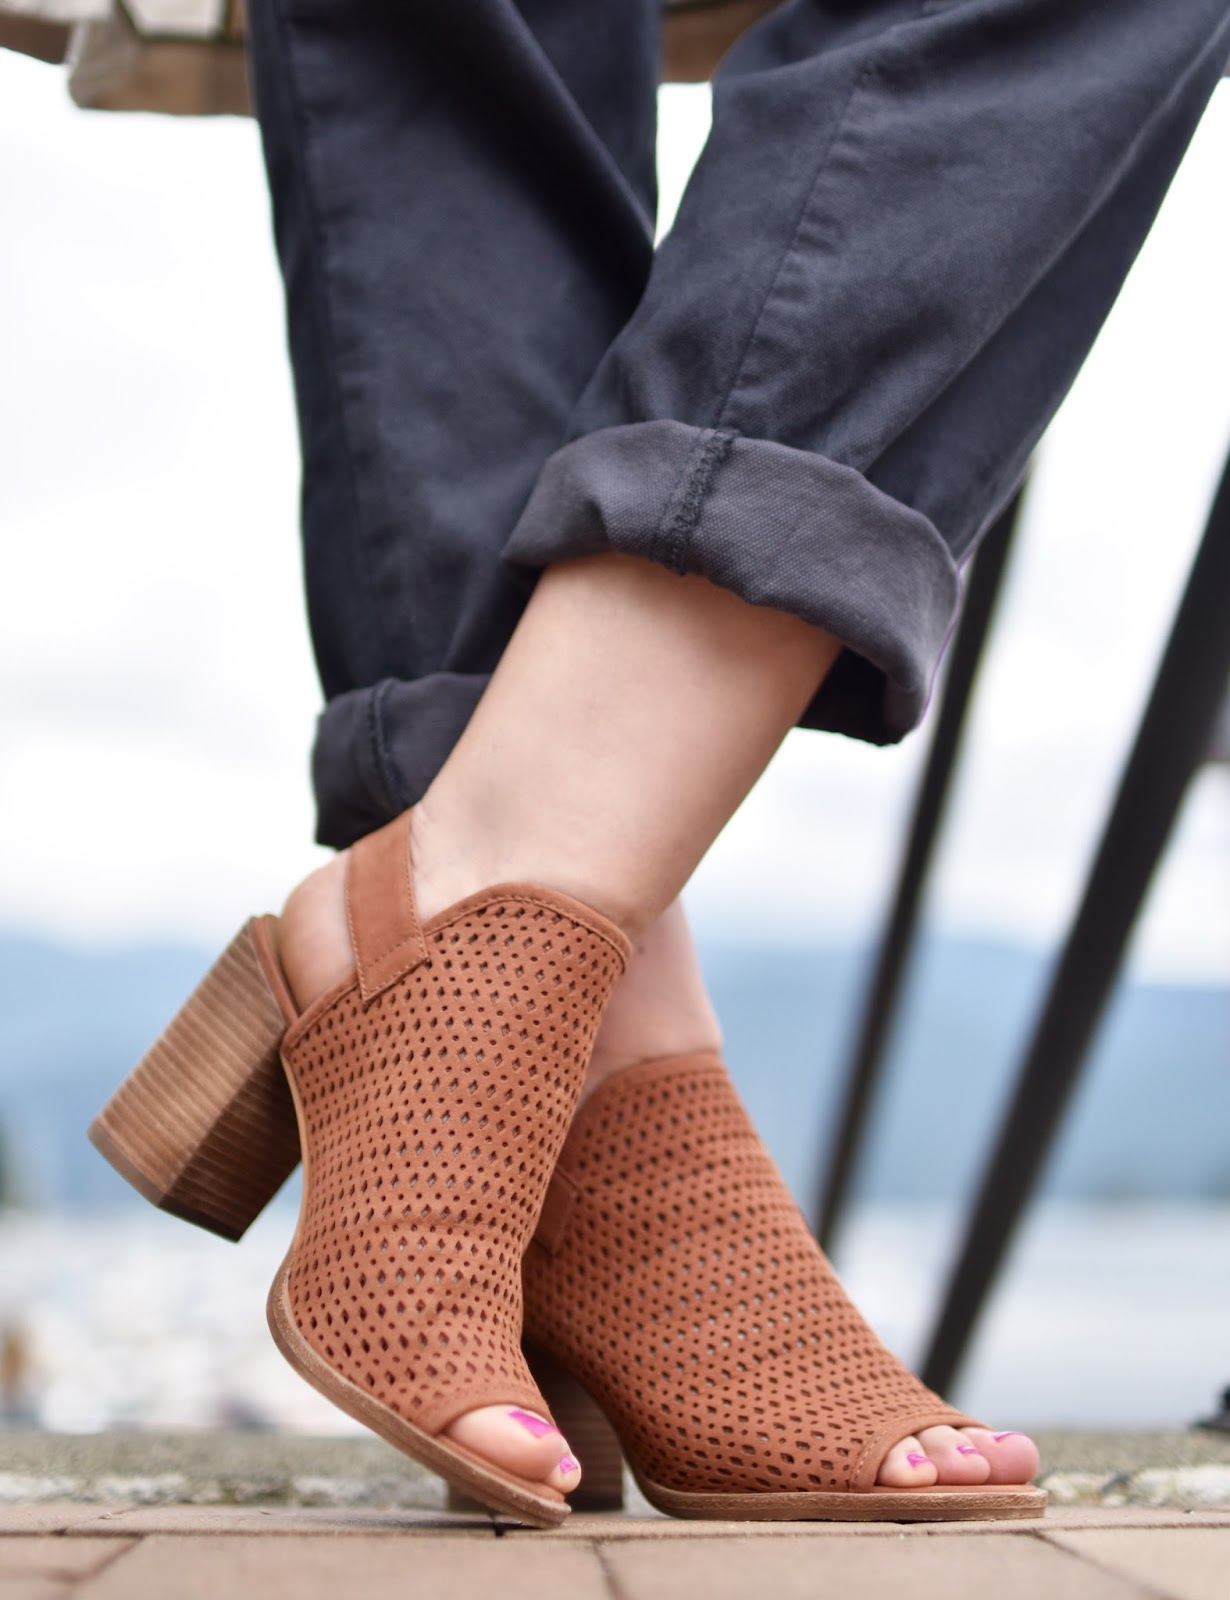 Monika Faulkner personal style inspiration - slouchy trousers, Steve Madden open-toed booties